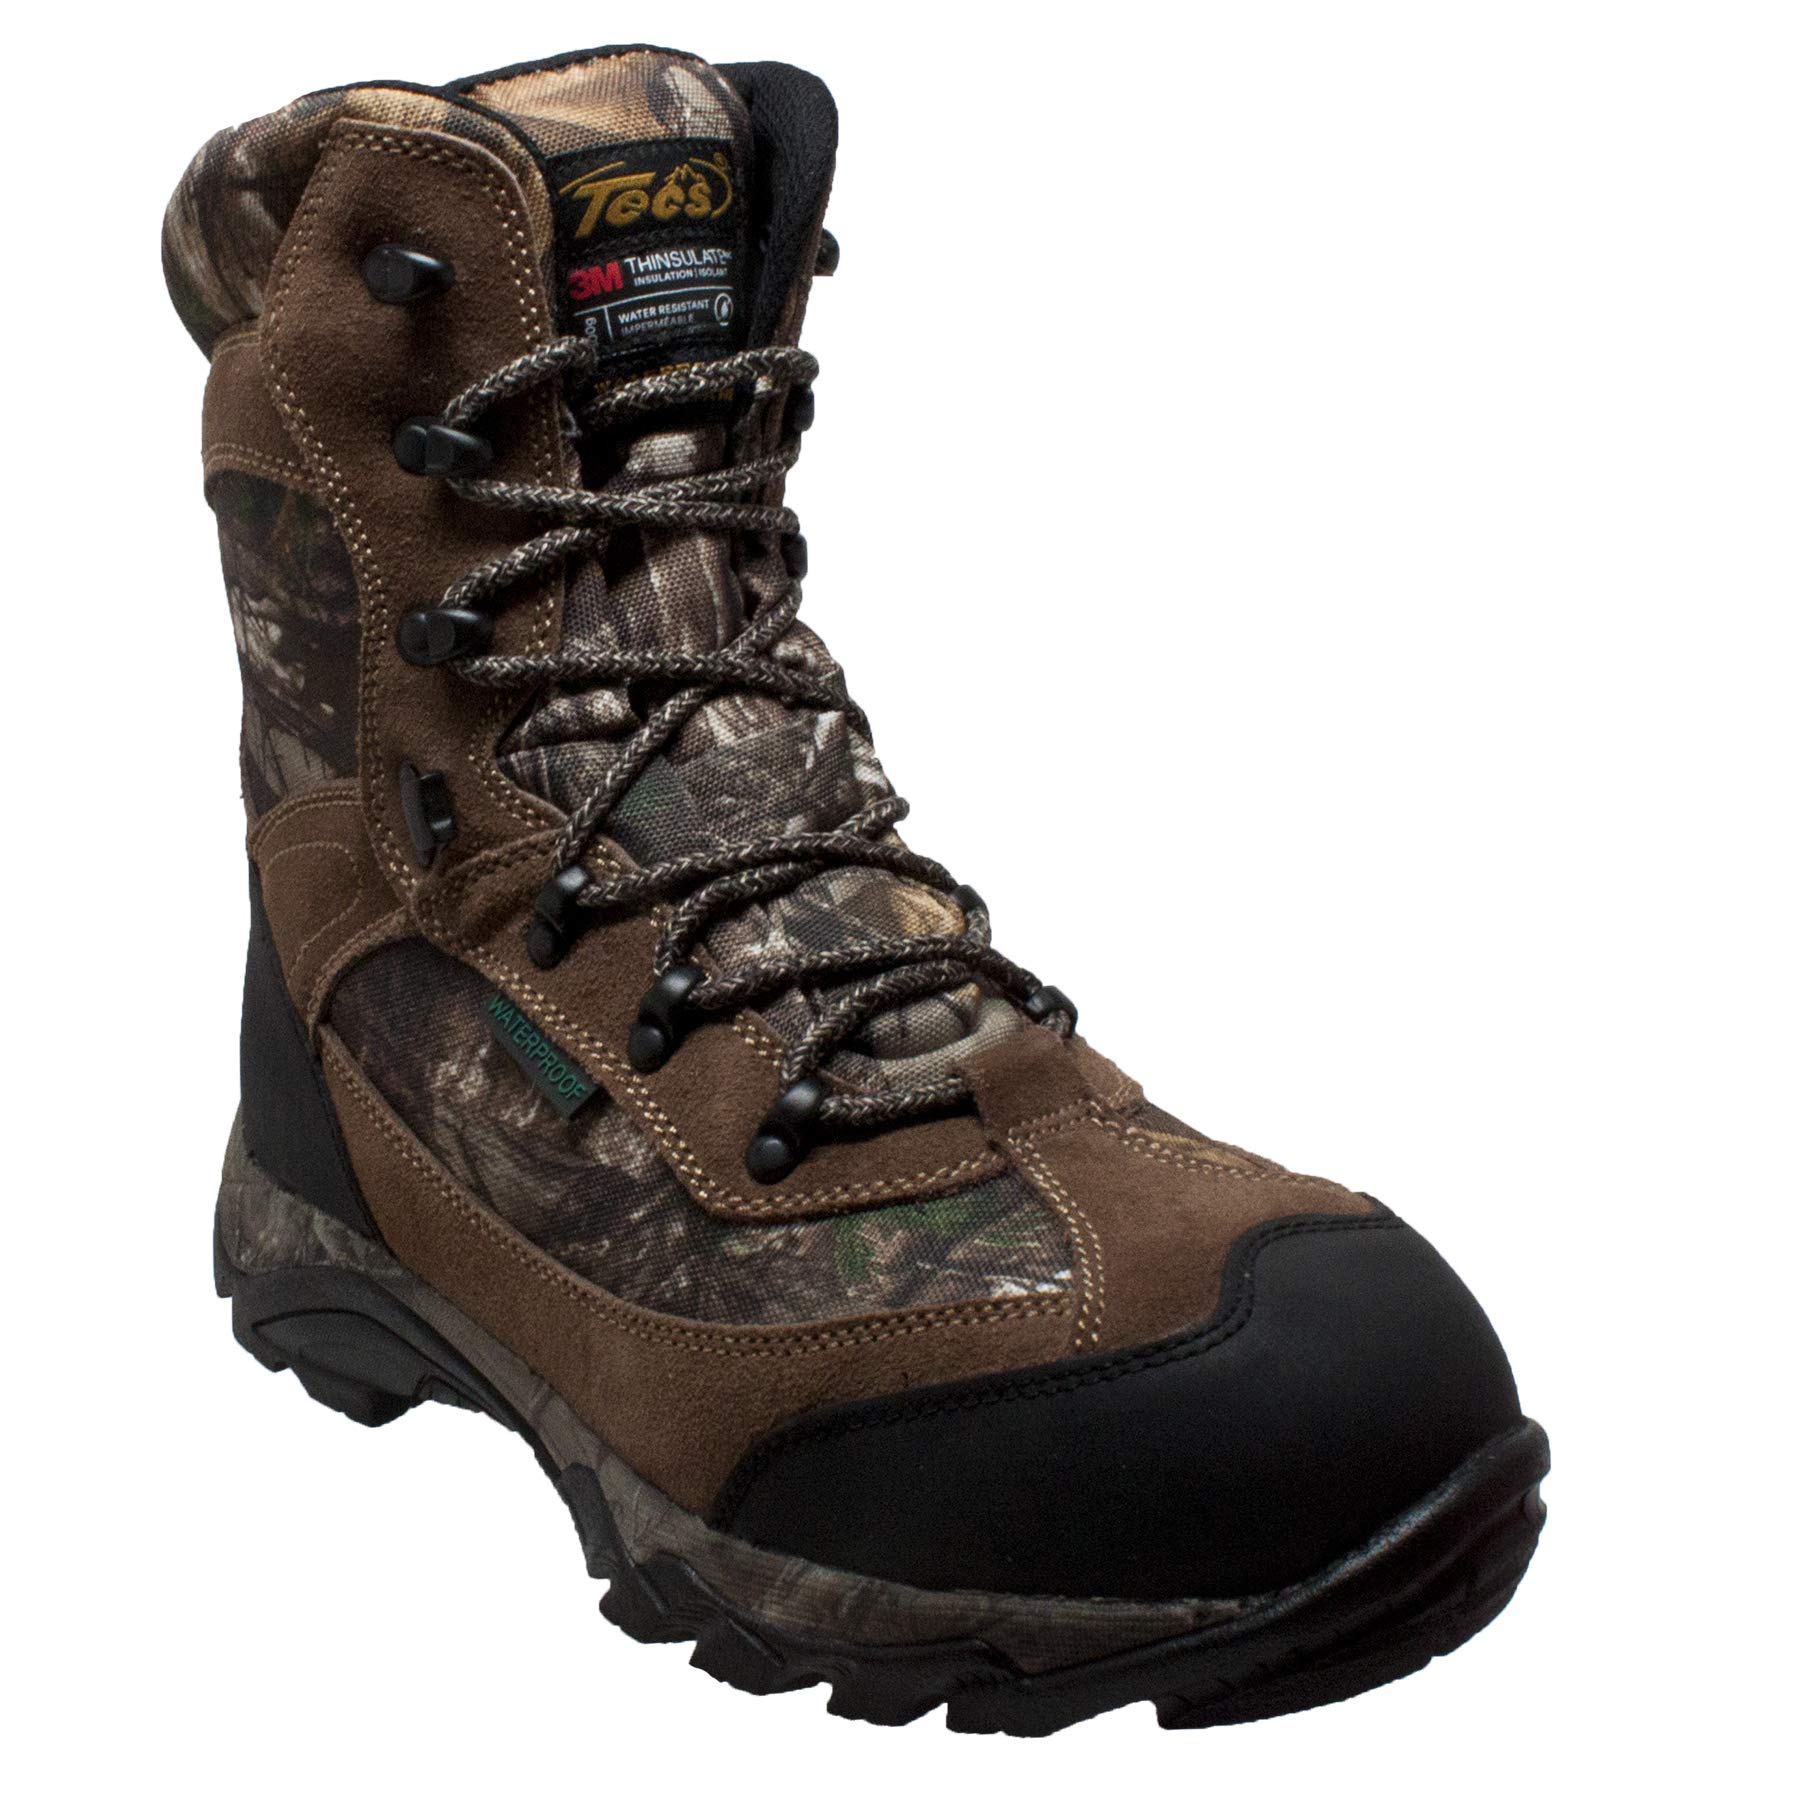 TECS Men's 9'' Leather Boots: Waterproof for Hunting, Fishing, Hiking or Outdoors 400g, Camo, 10 W US by TECS